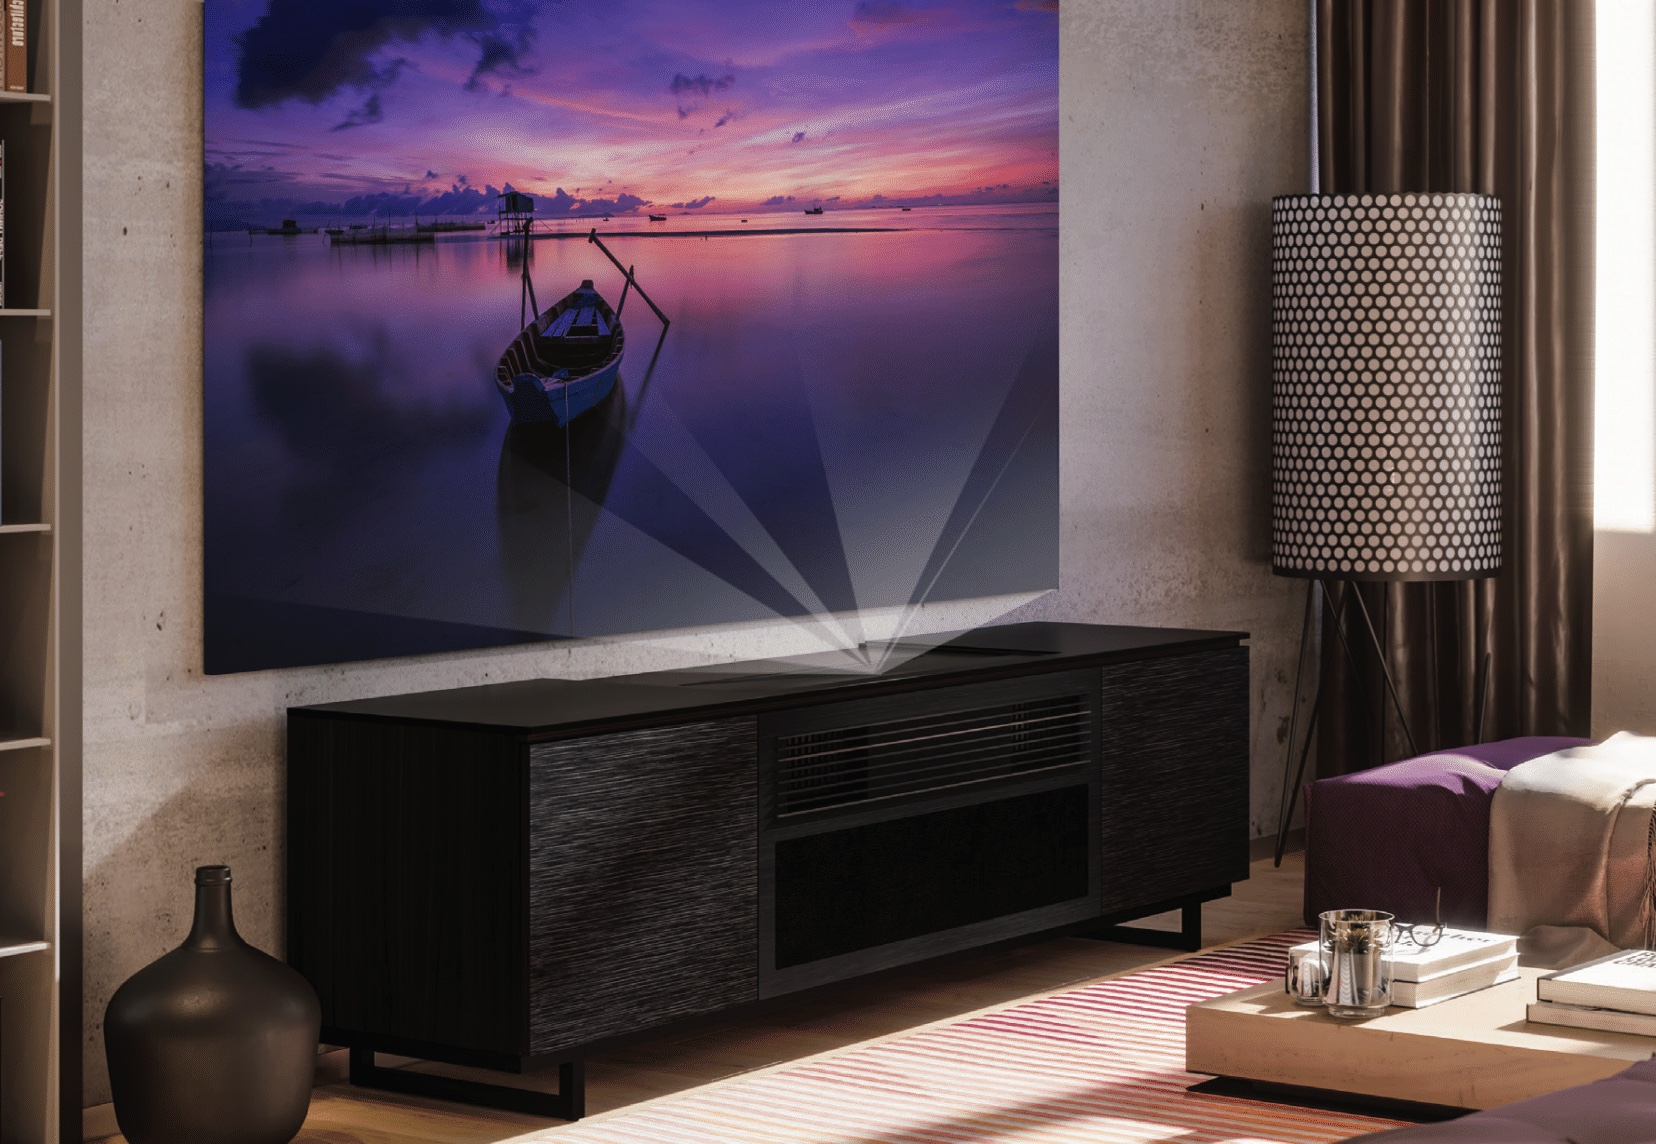 LG HU85L 4K Ultra Short Throw Projector launch demo event at